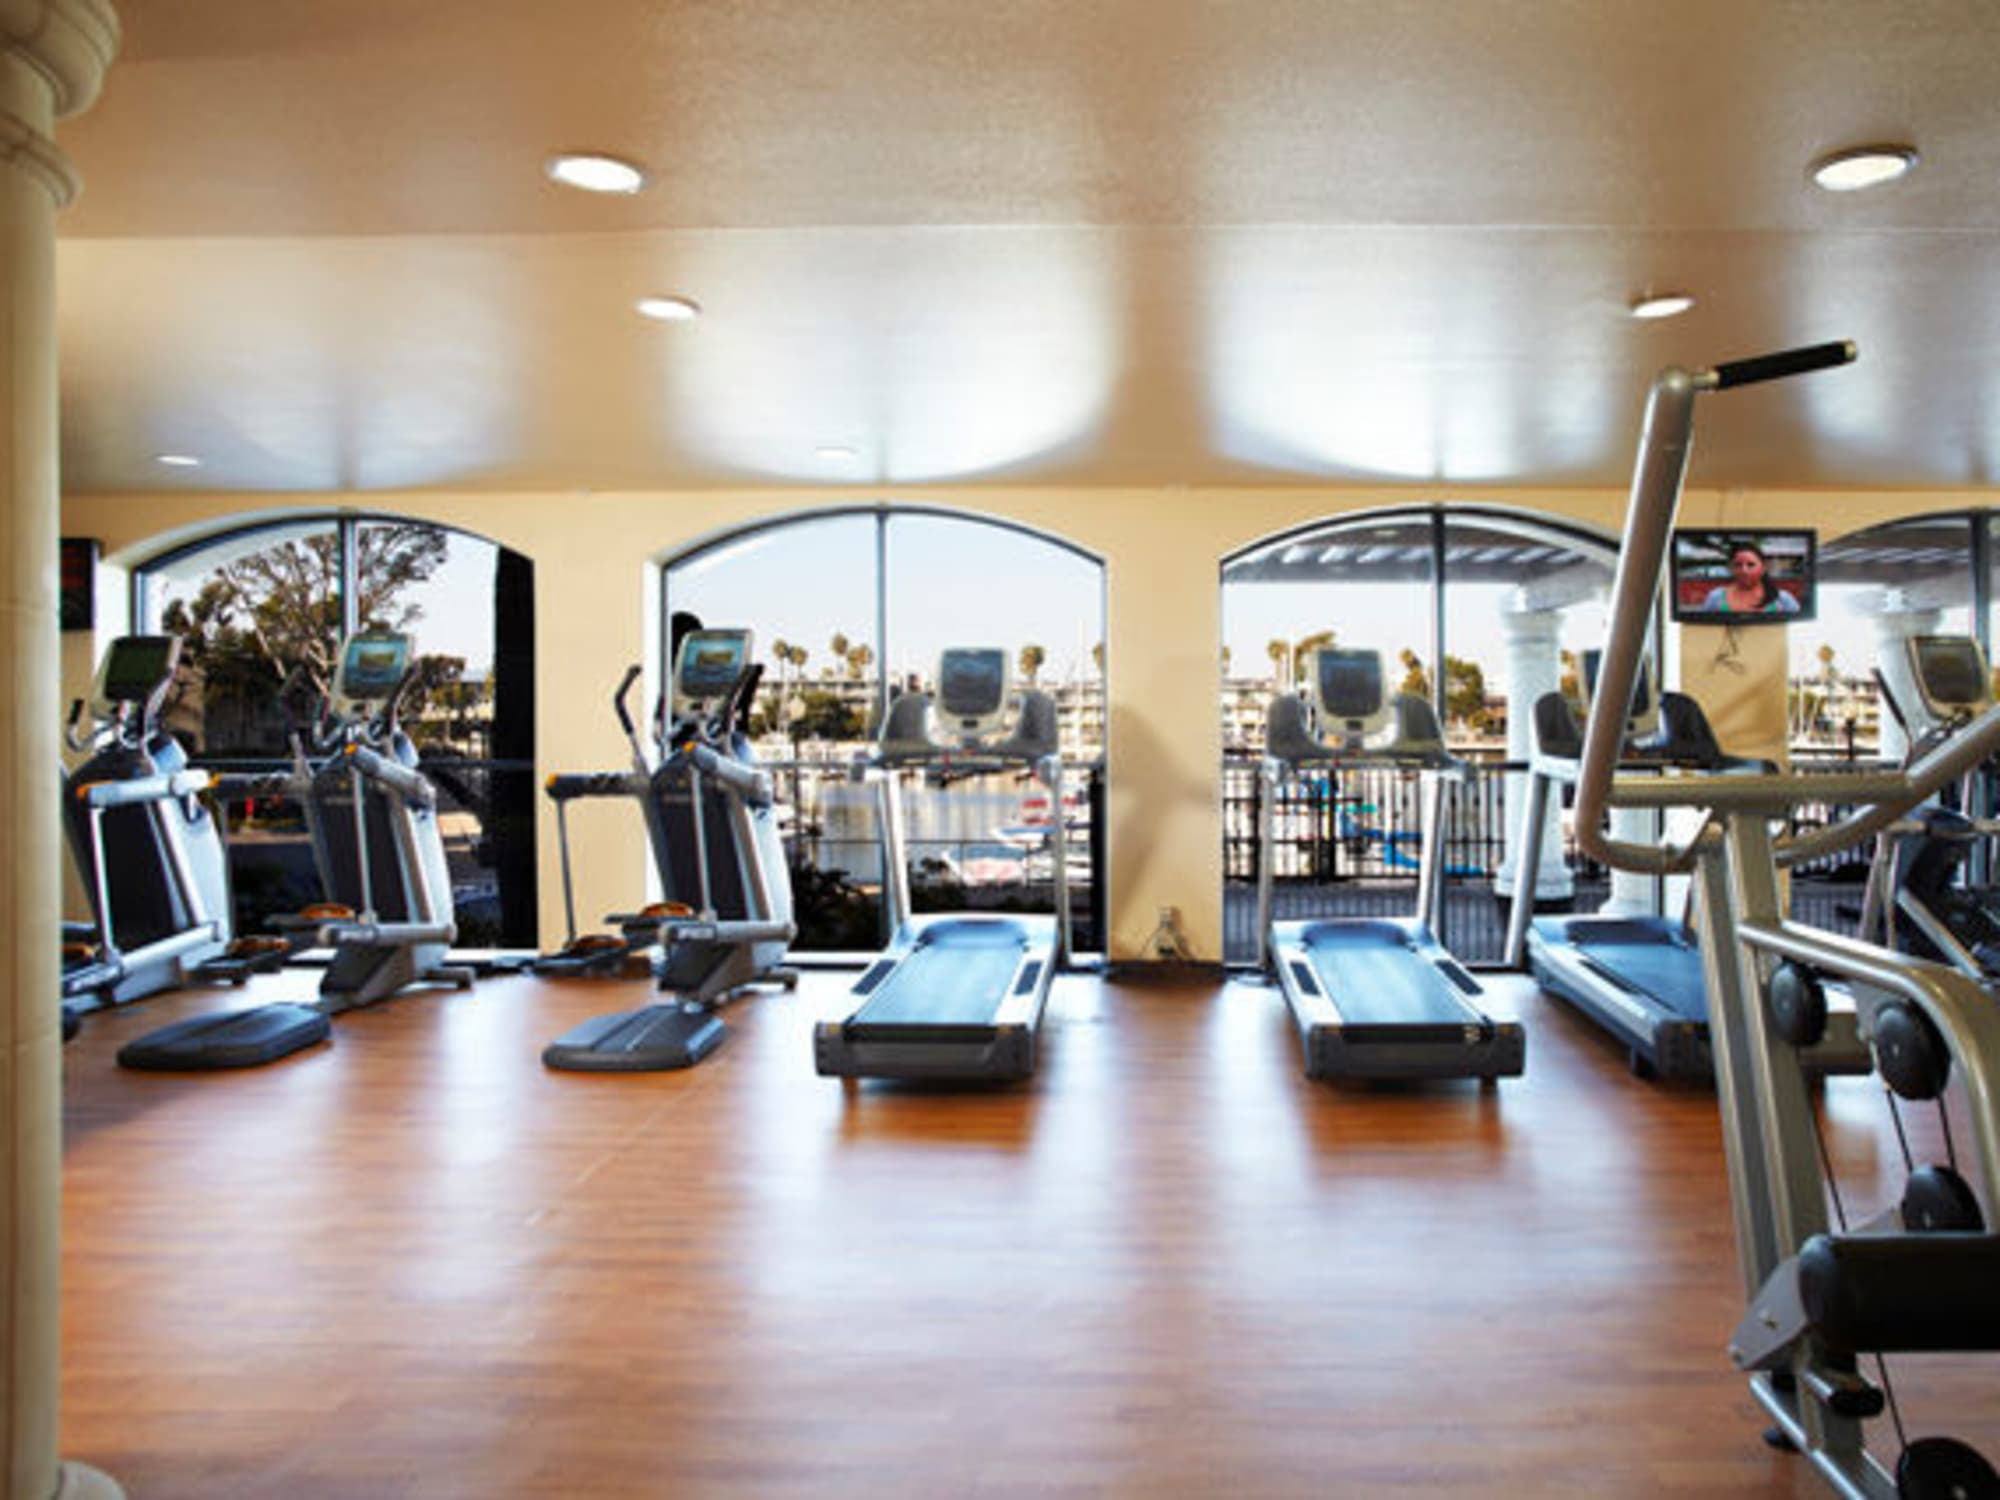 Very well-equipped fitness center at The Tides at Marina Harbor in Marina Del Rey, California